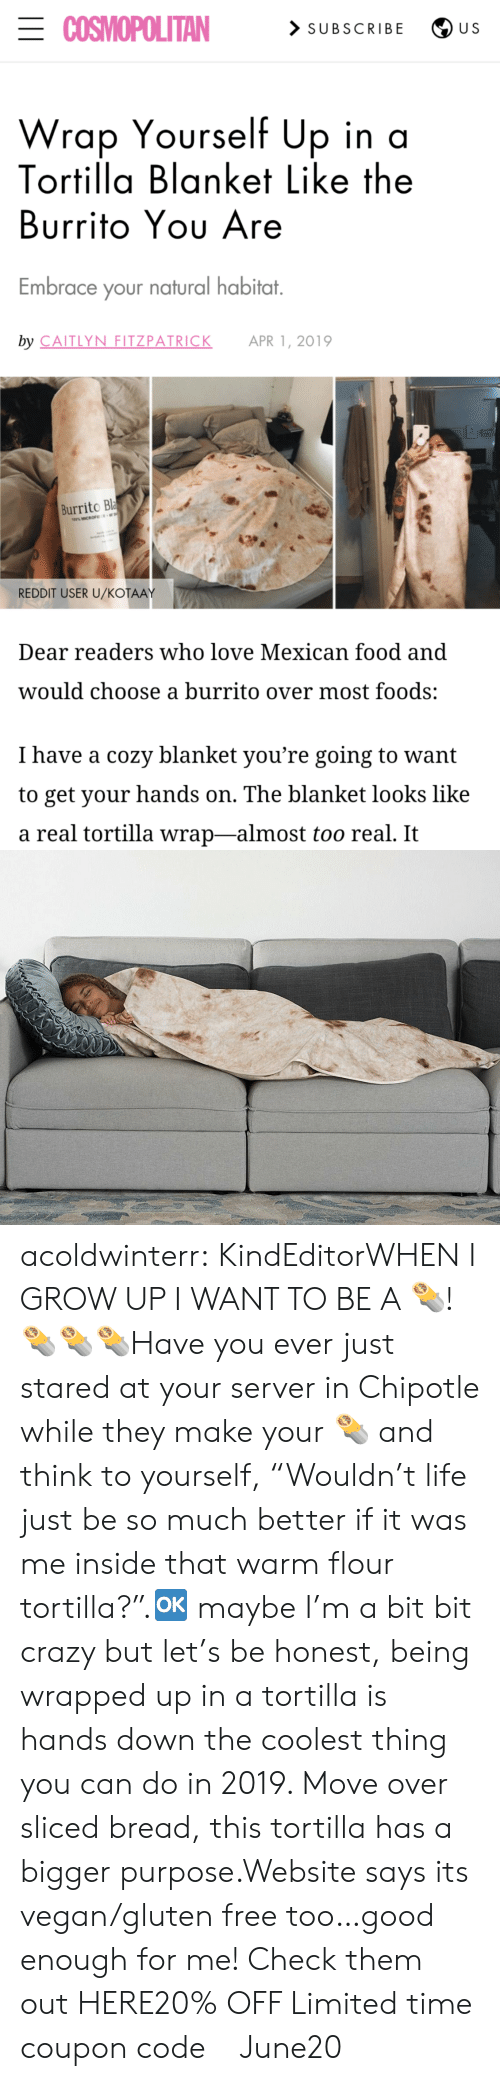 """Too Real: ECOSMOPOLITAN  > SUBSCRIBE  U S  Wrap Yourself Up in a  Tortilla Blanket Like the  Burrito Yου Are  Embrace your natural habitat.  by CAITLYN FITZPATRICK  APR 1, 2019  Burrito Bla  100% MICROFE  REDDIT USER U/KOŤAAY  Dear readers who love Mexican food and  would choose a burrito over most foods:  I have a cozy blanket you're going to want  to get your hands on. The blanket looks like  a real tortilla wrap-almost too real. It acoldwinterr:  KindEditorWHEN I GROW UP I WANT TO BE A 🌯! 🌯🌯🌯Have you ever just stared at your server in Chipotle while they make your 🌯 and think to yourself, """"Wouldn't life just be so much better if it was me inside that warm flour tortilla?"""".🆗 maybe I'm a bit bit crazy but let's be honest, being wrapped up in a tortilla is hands down the coolest thing you can do in 2019. Move over sliced bread, this tortilla has a bigger purpose.Website says its vegan/gluten free too…good enough for me! Check them out HERE20% OFF Limited time coupon code : June20"""